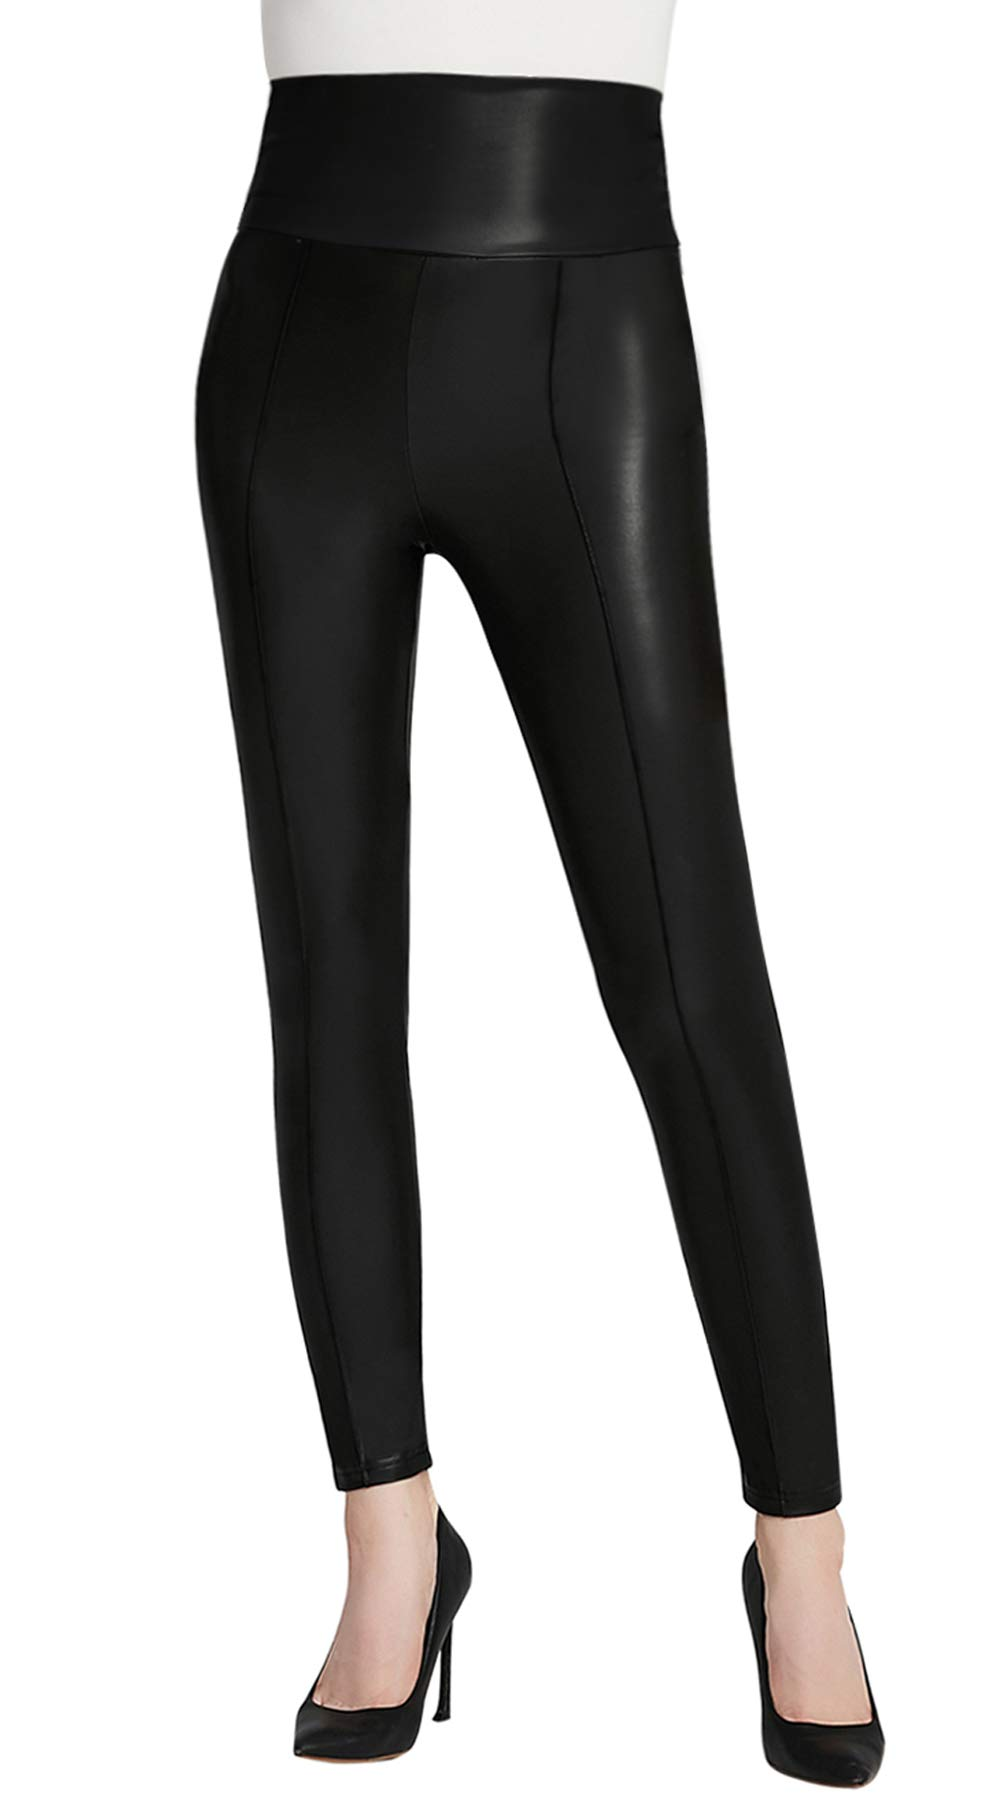 Everbellus High Waisted Faux Leather Leggings for Women Sexy Black Leather Pants X-Large by Everbellus (Image #1)